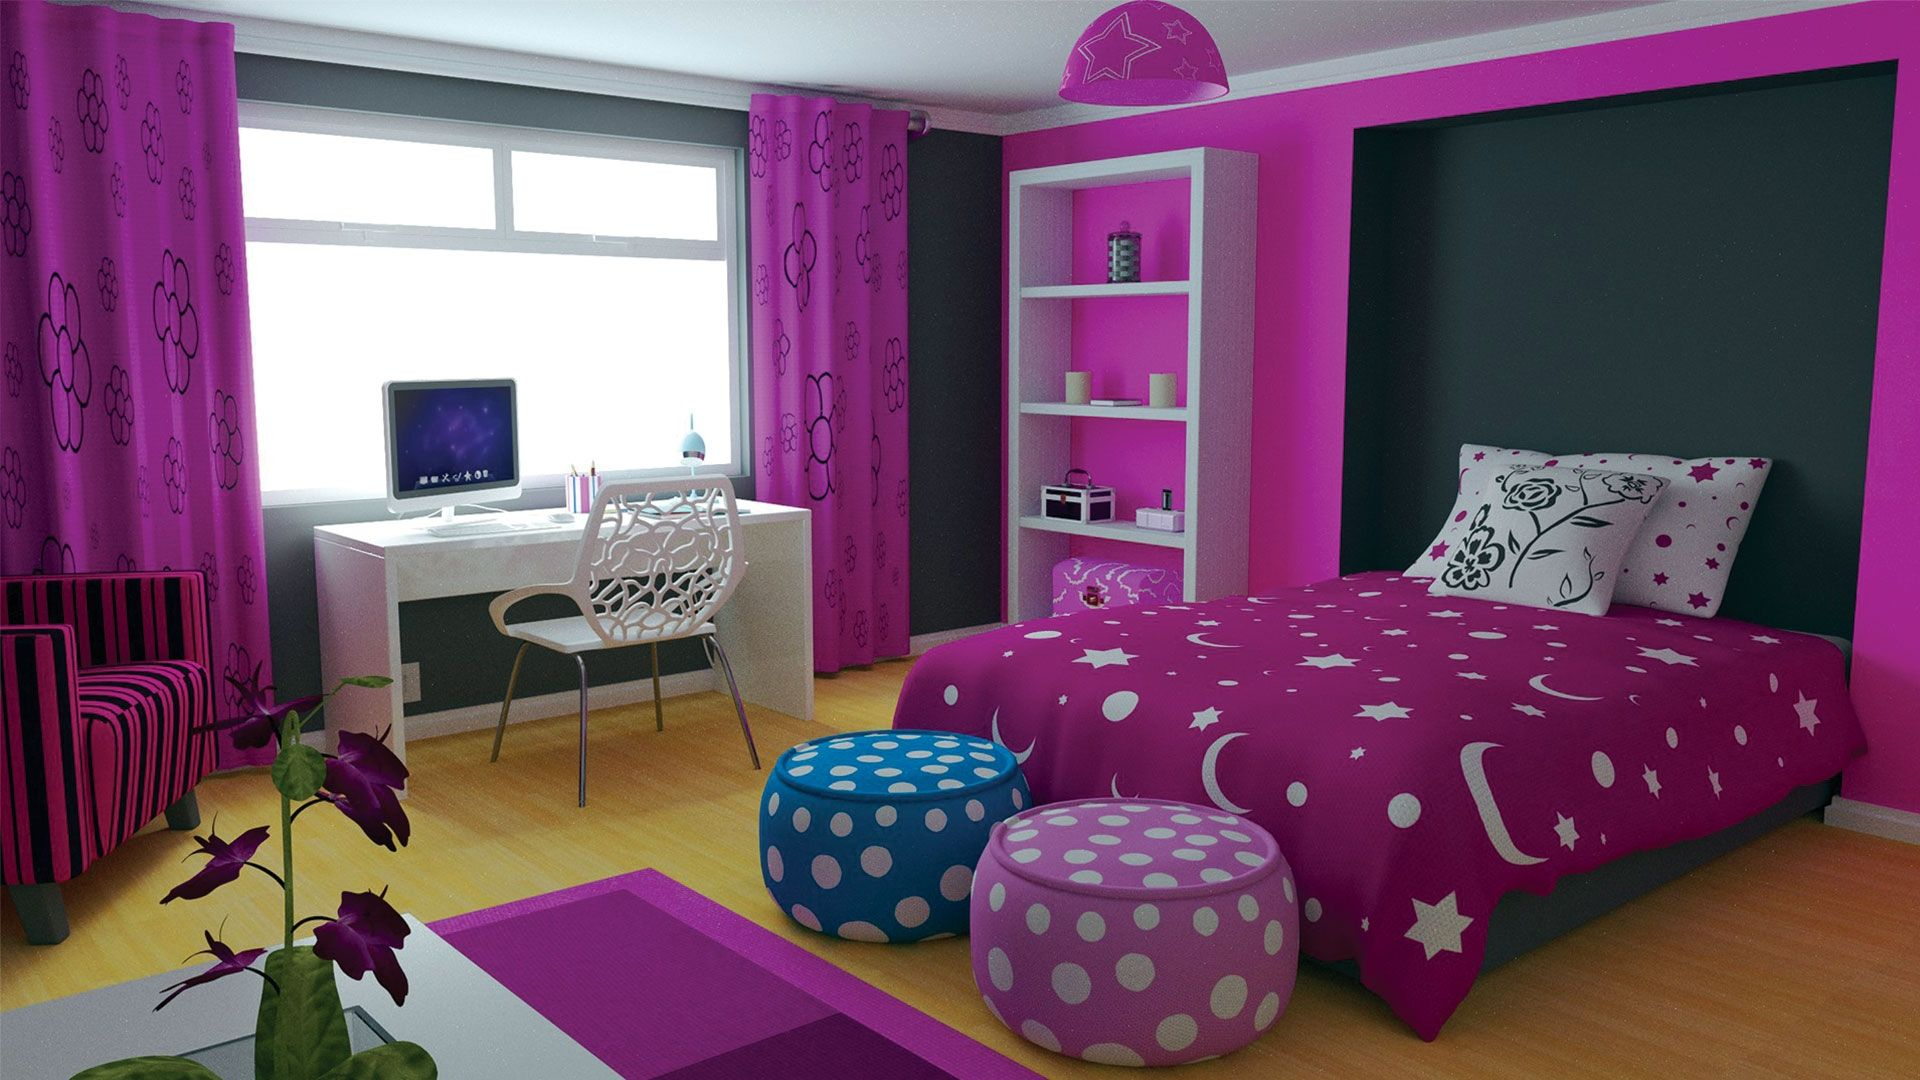 Top 5 S Bedroom Decoration Ideas In 2017 Every Regardless Of Her Age Loves Grooming Herself Love Taking Care Themselves All